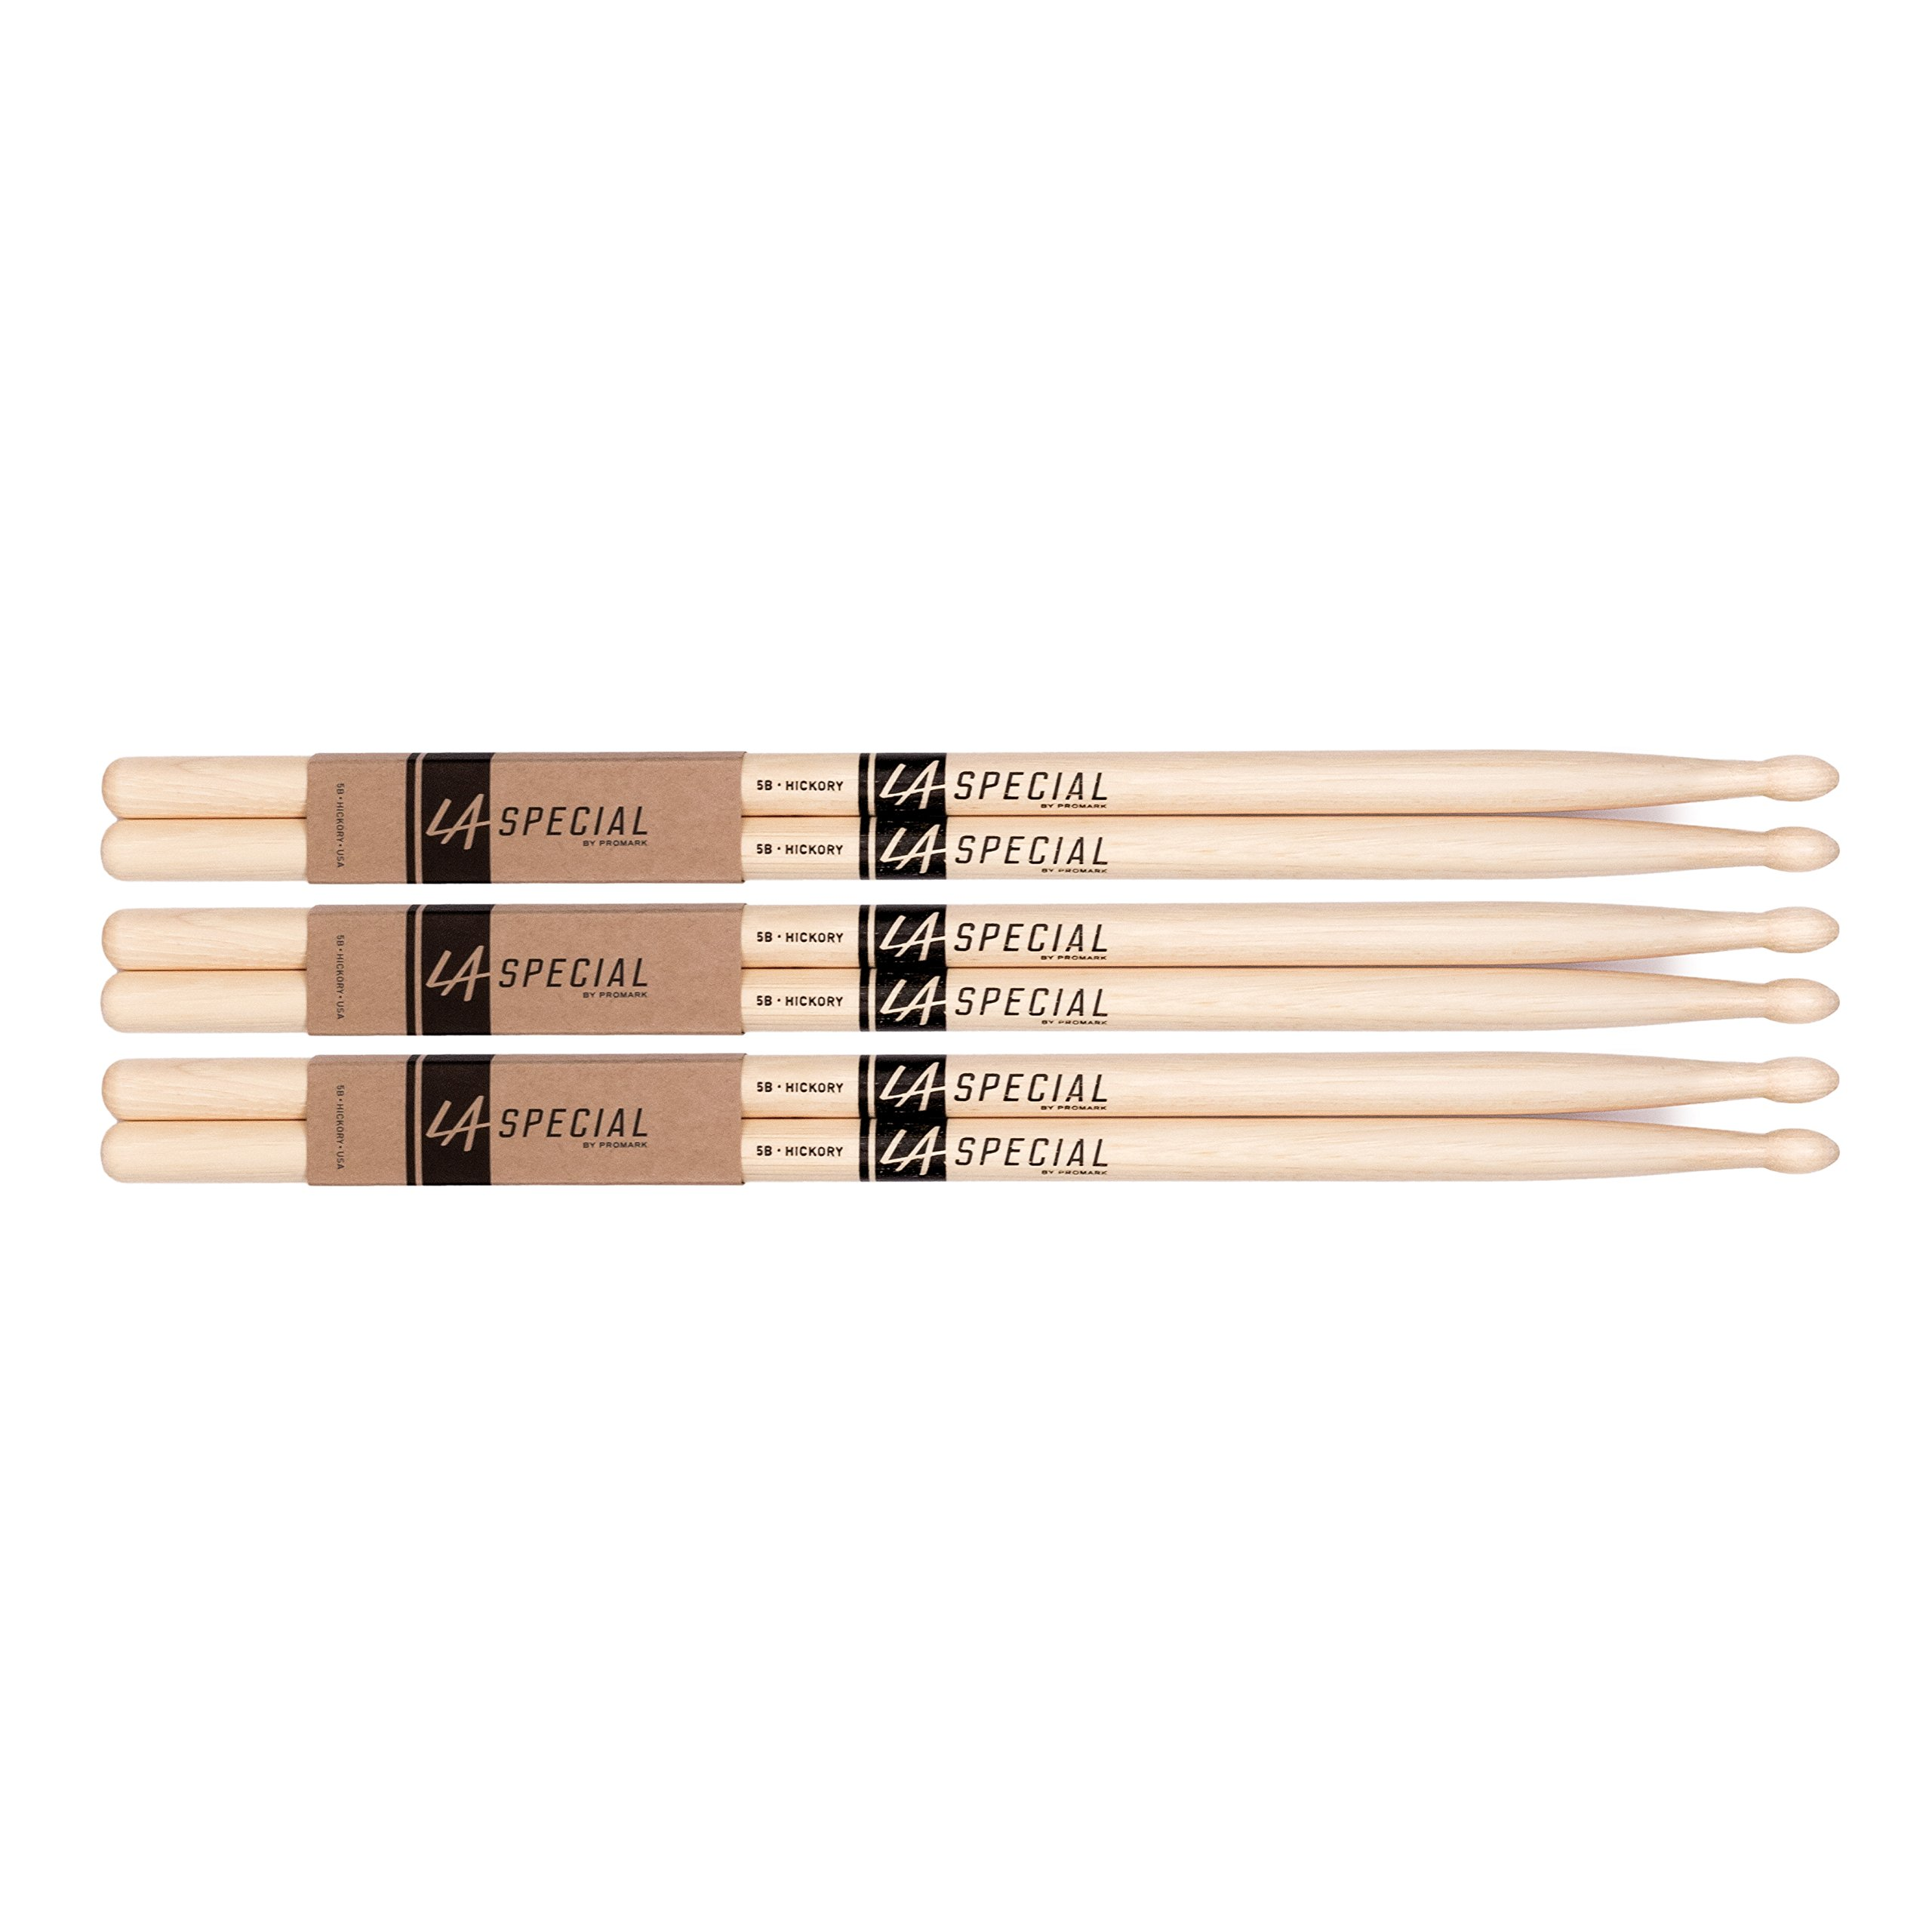 LA Specials by Promark 5B Hickory Drumsticks, 3-pack